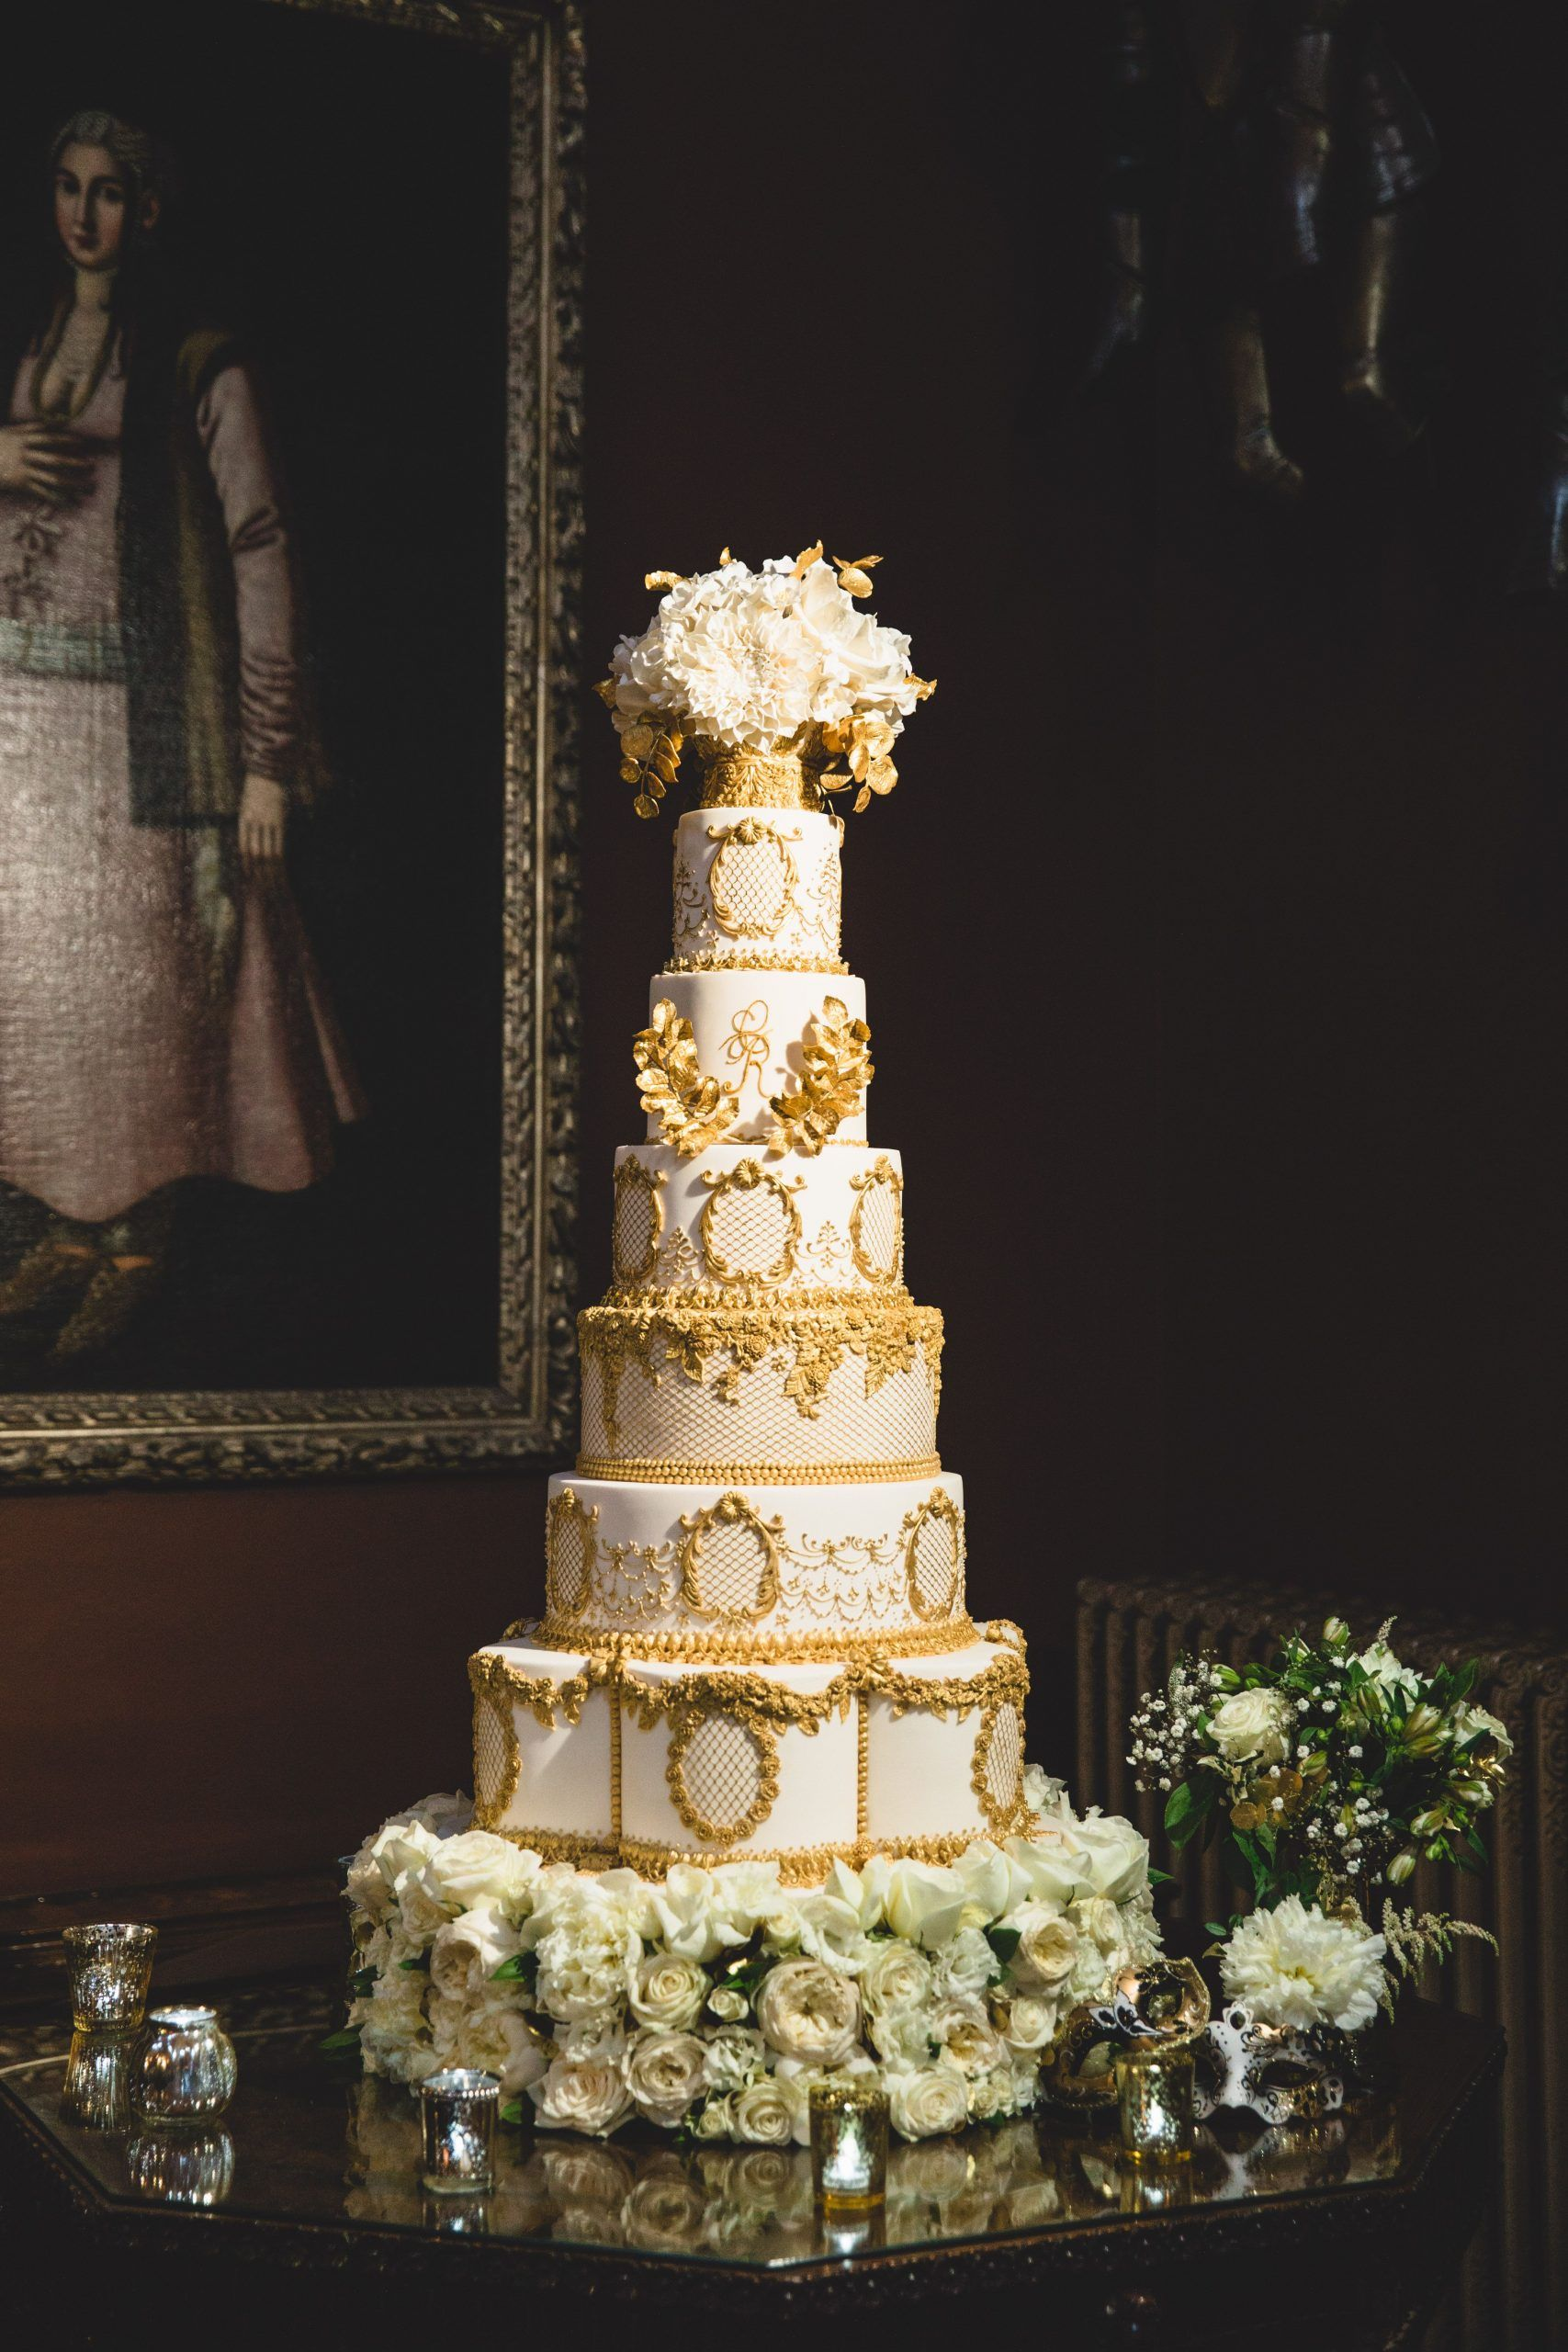 Elegantly Grand 6 Tiered Luxury Ivory Wedding Cake With Edible Gold Beading Lat 6tiered Beadi In 2020 Luxury Wedding Cake Royal Wedding Cake Elegant Wedding Cakes